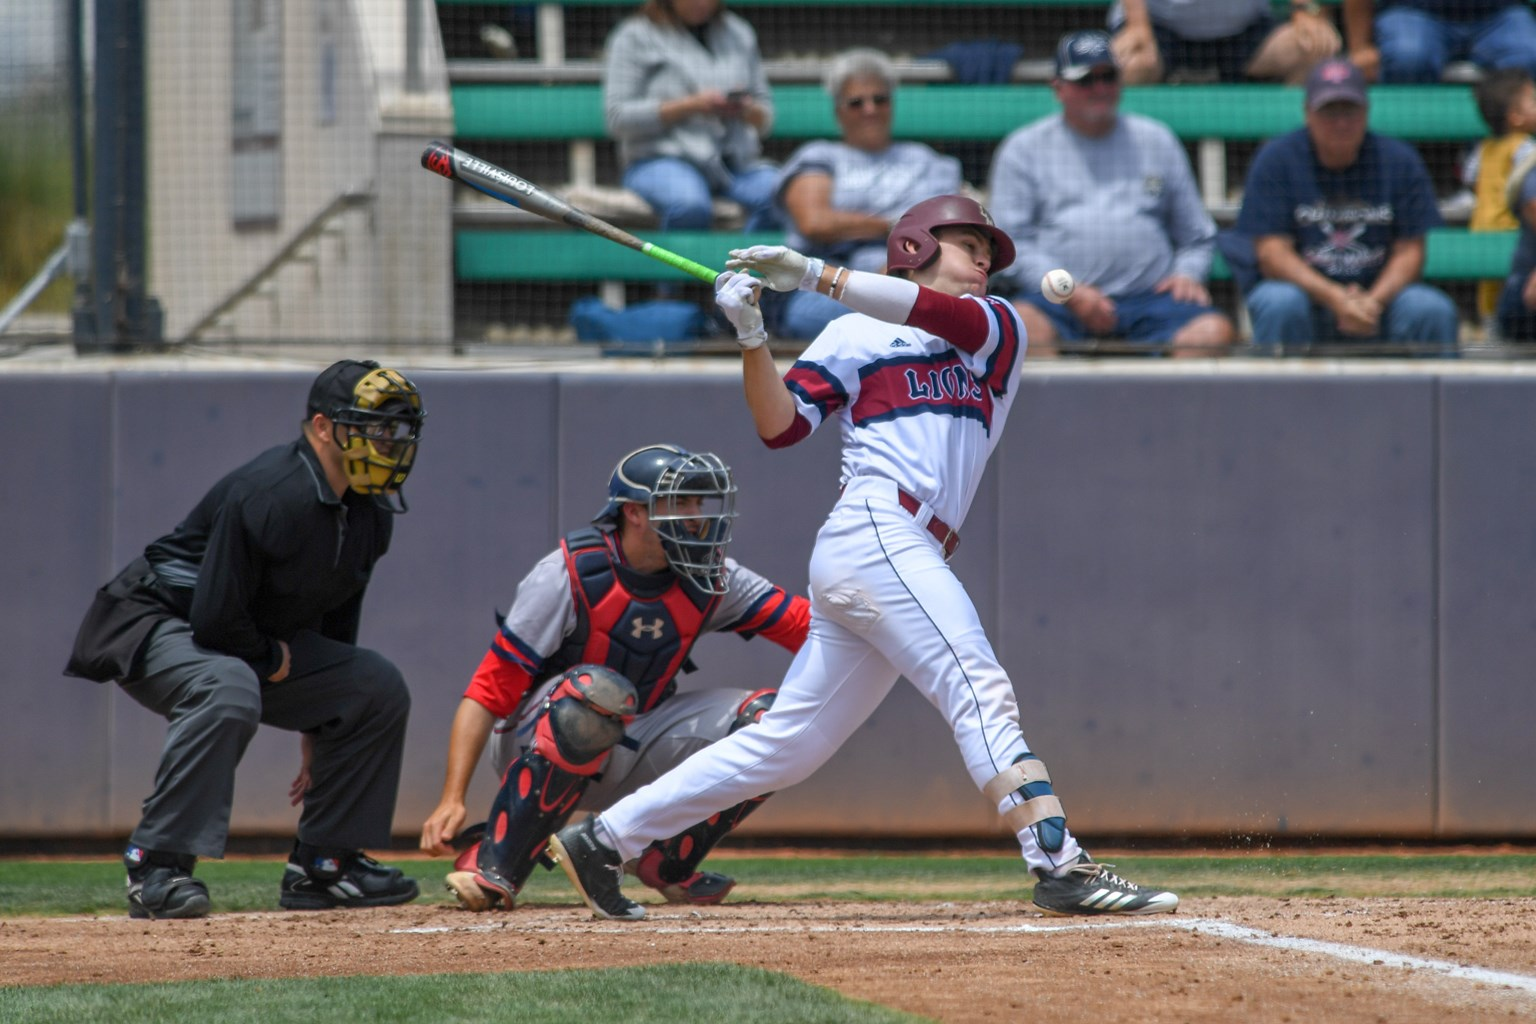 Baseball - Loyola Marymount University Athletics